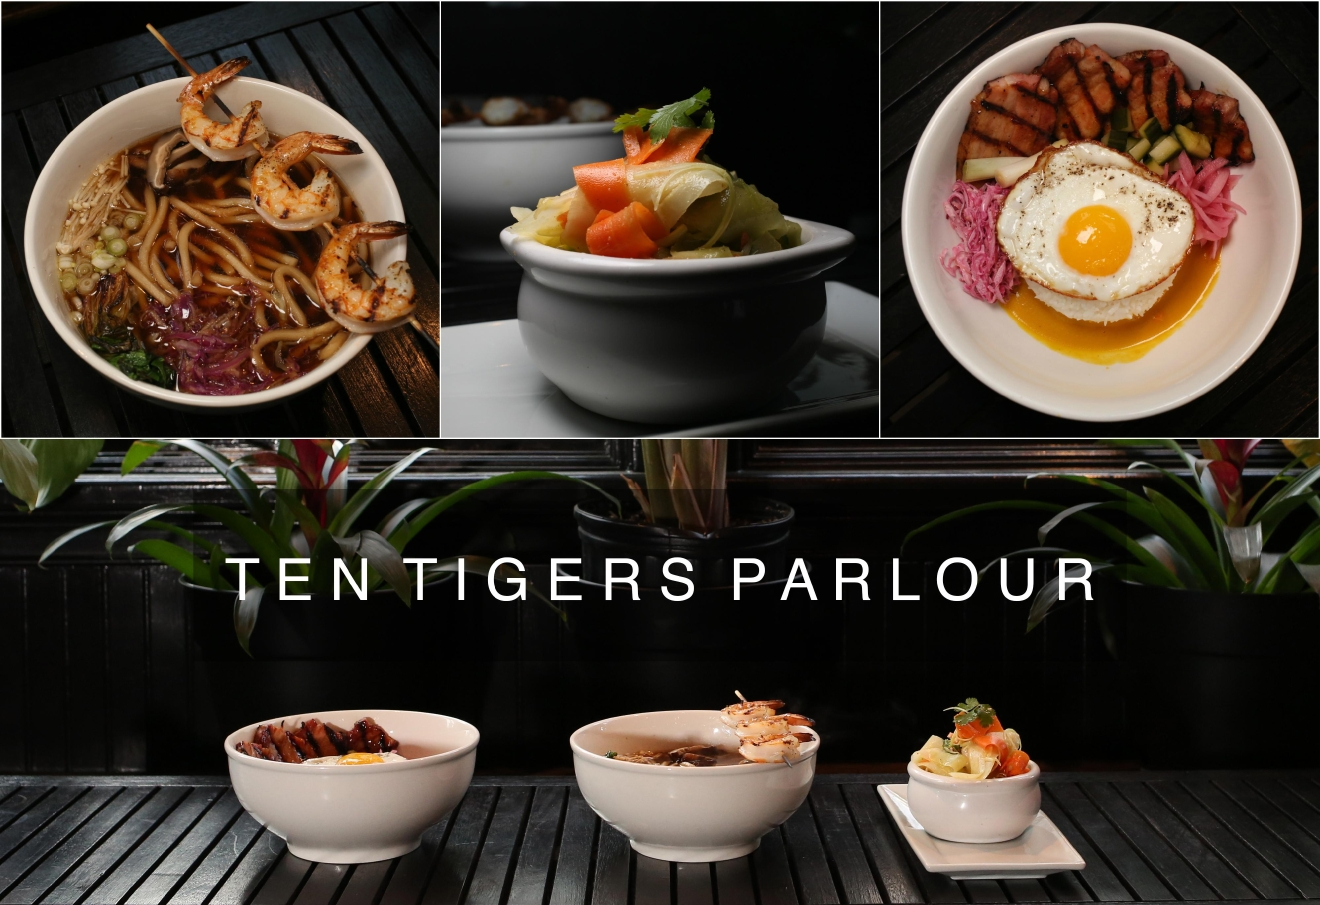 Ten Tigers Parlour is located at 3813 Georgia Ave NW (Amanda Andrade-Rhoades/DC Refined)